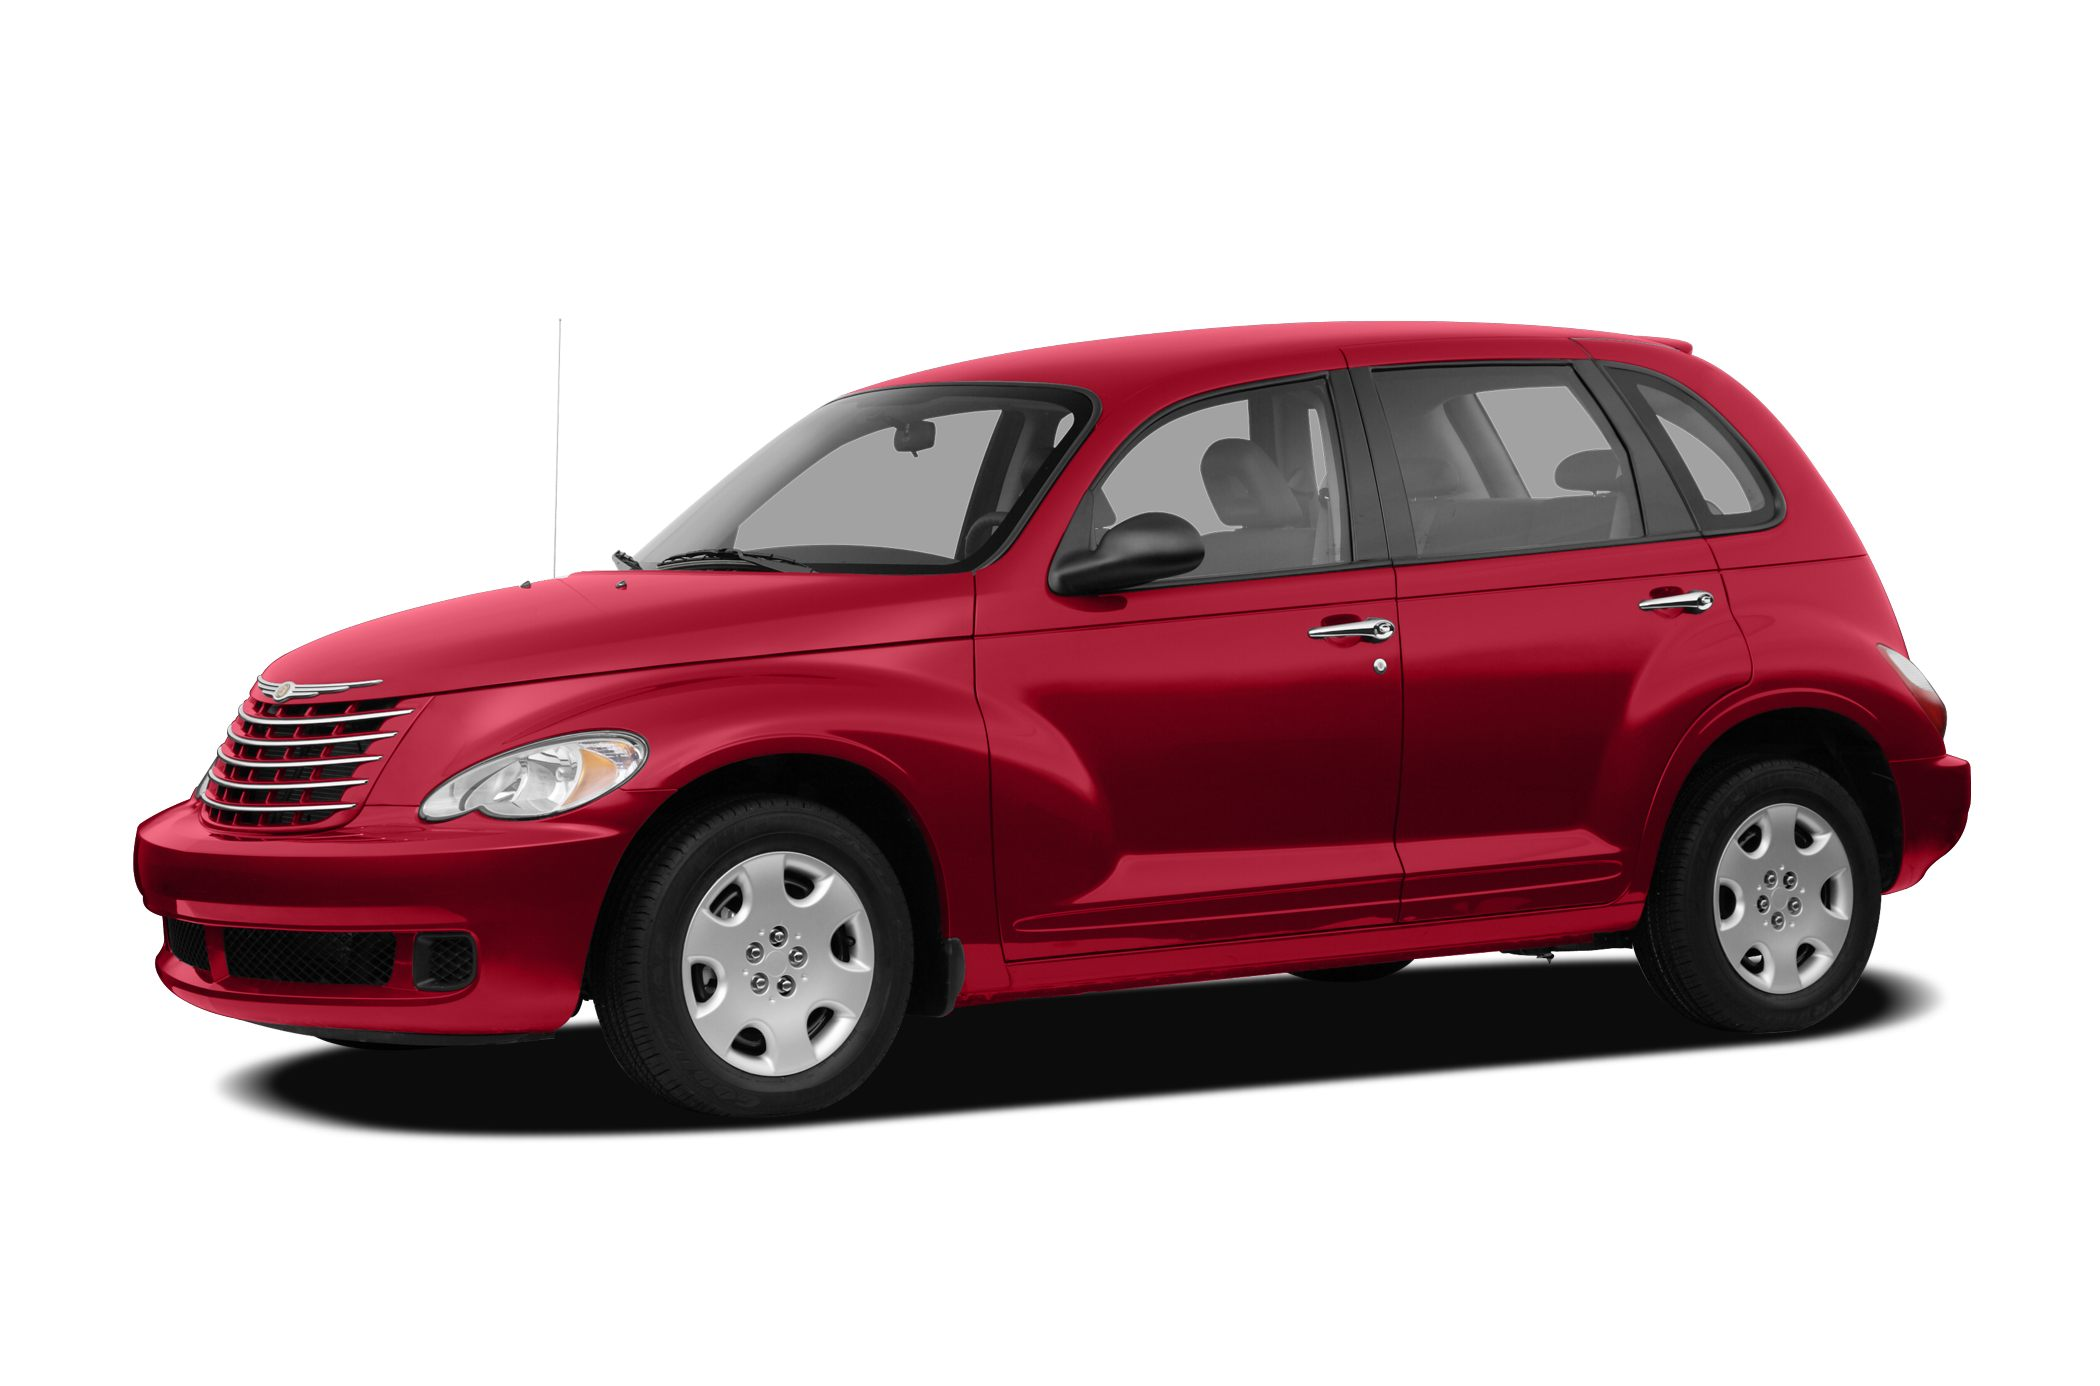 2010ChryslerPT Cruiser